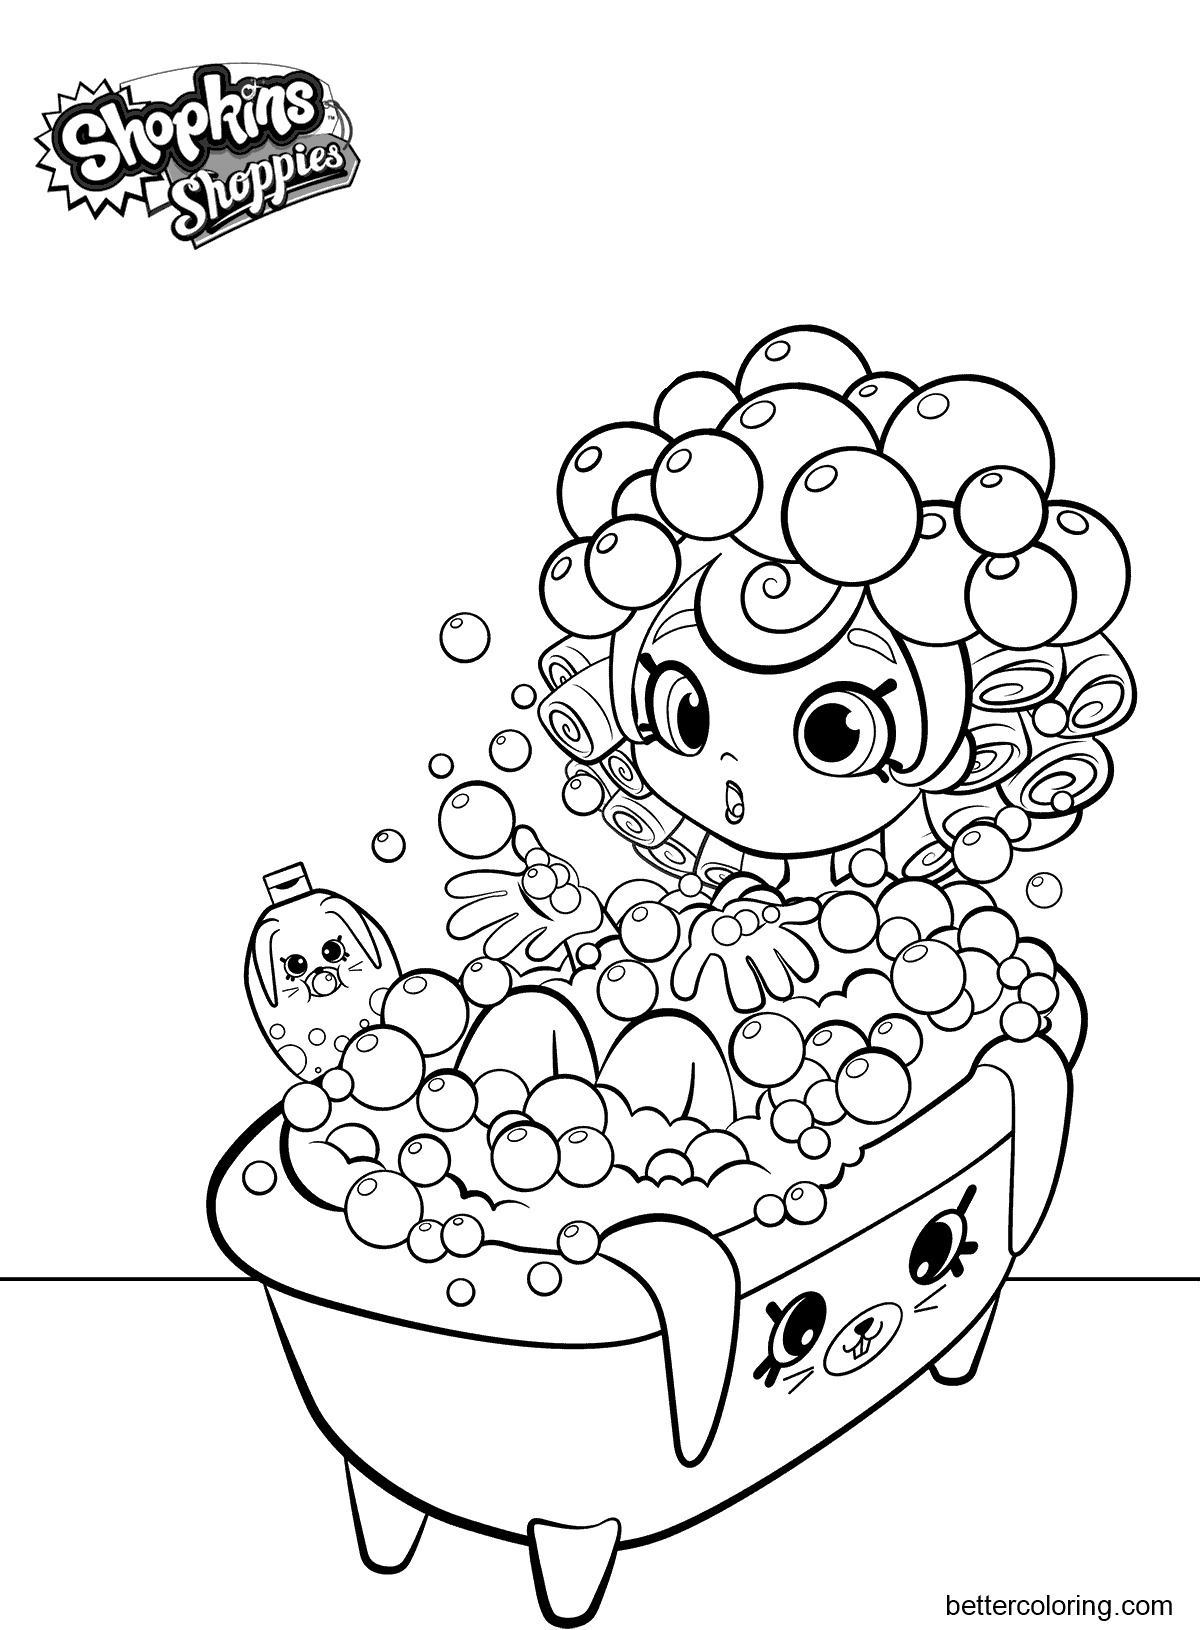 Shopkins Shoppies Coloring Pages